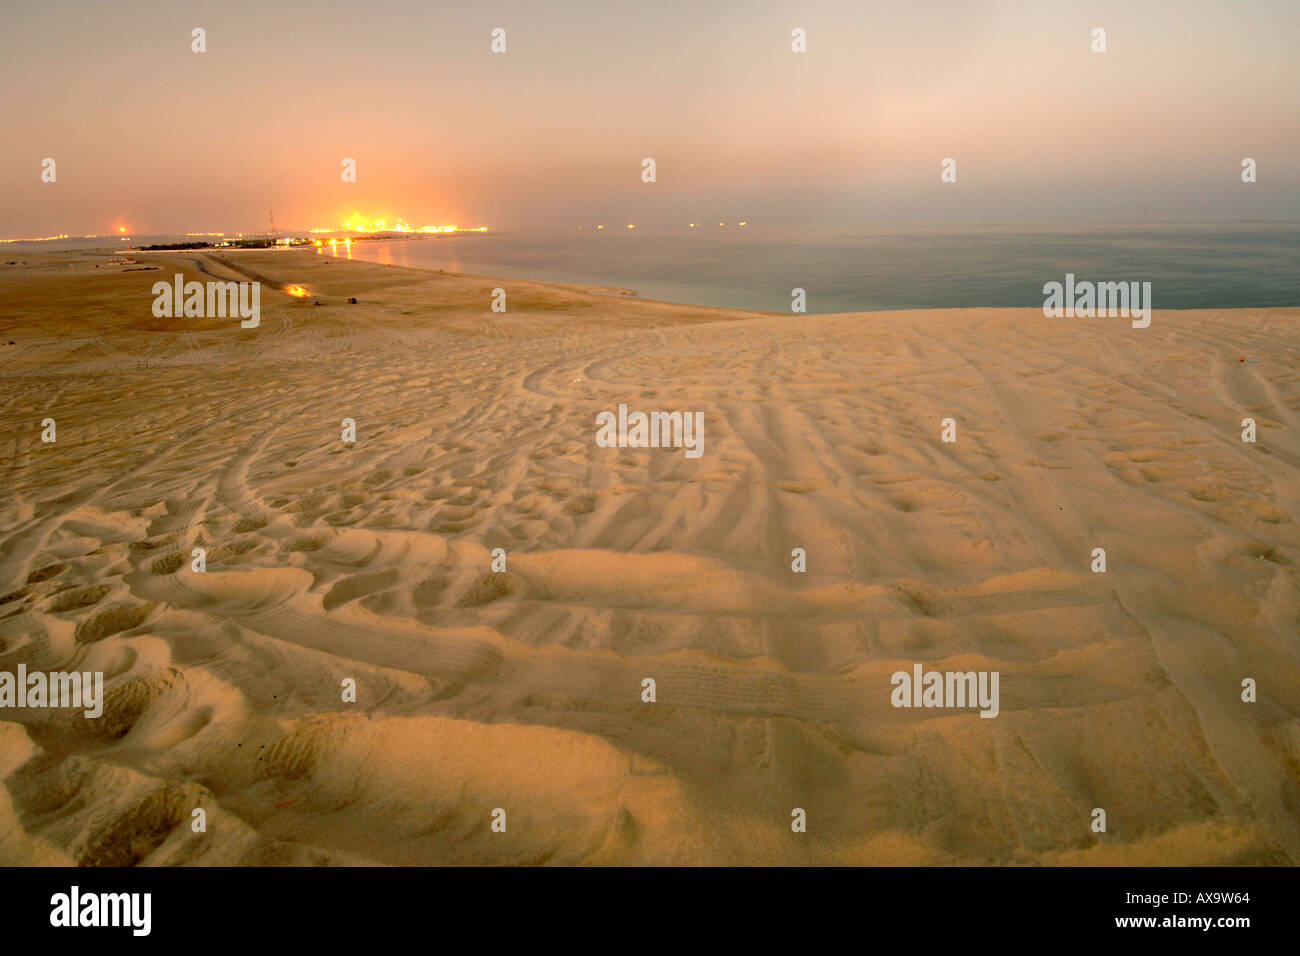 Industrial refinery seen from the Inland Sea (Khor al Adaid) in southern Qatar. - Stock Image